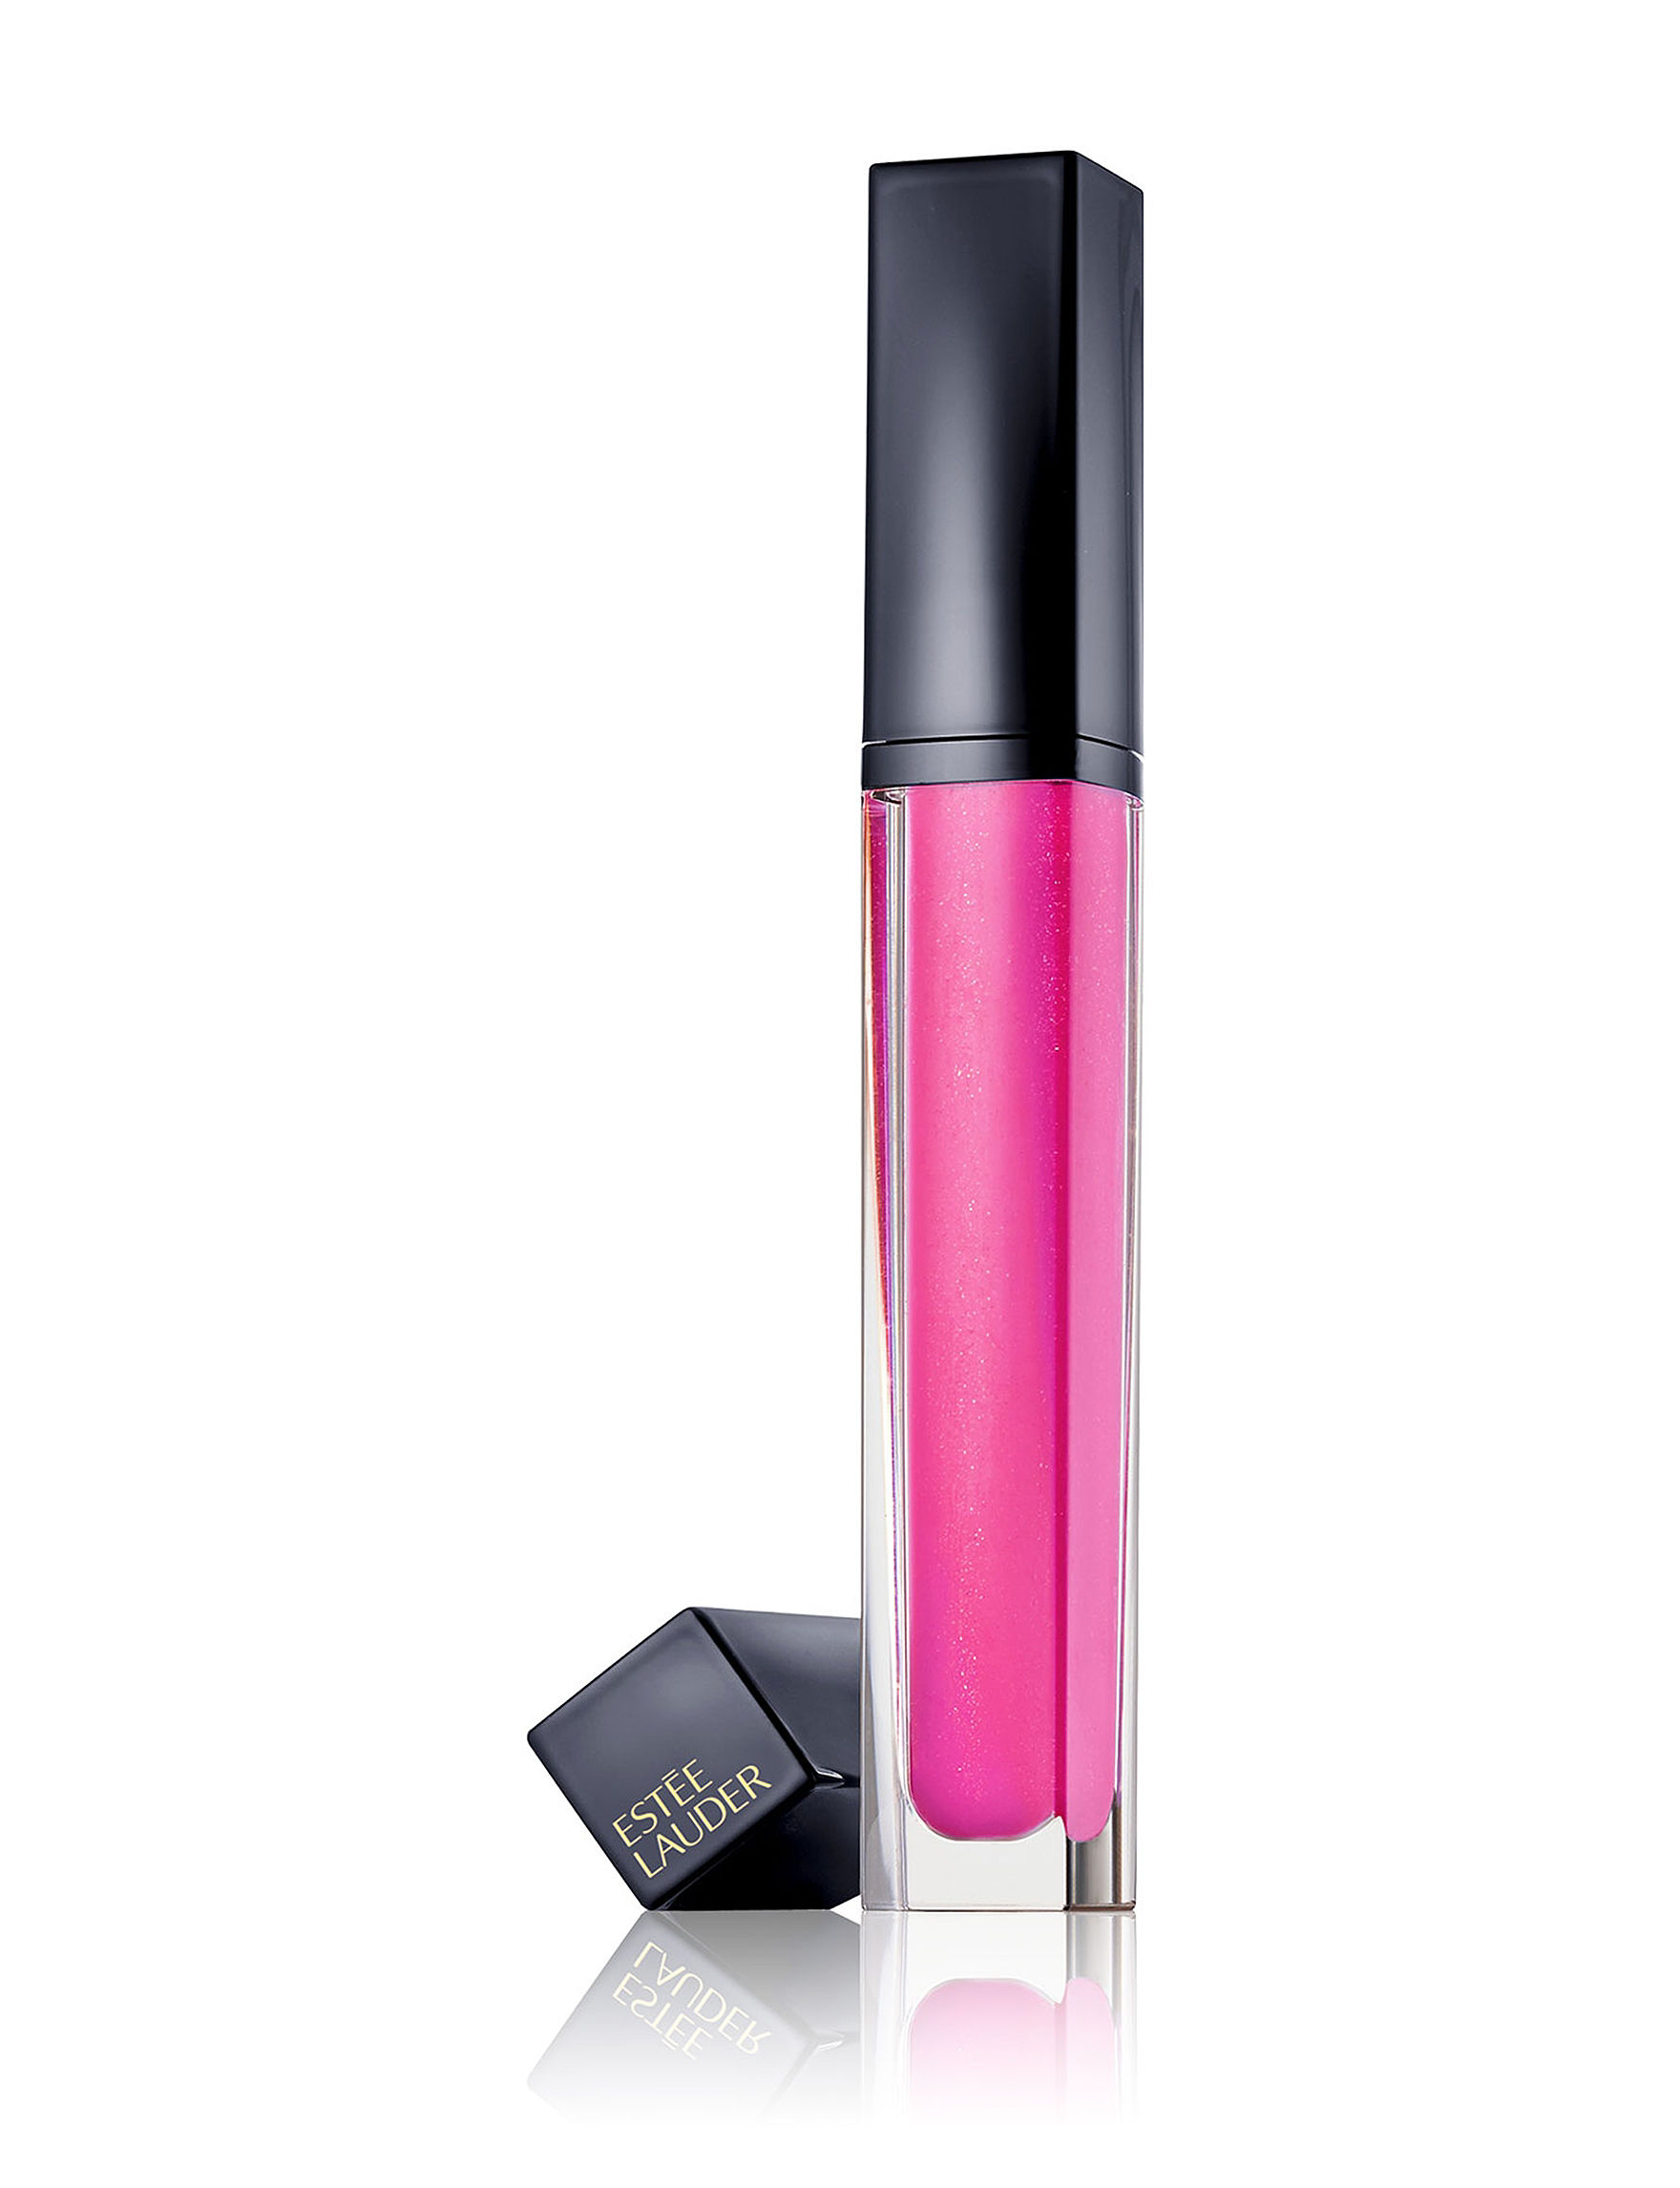 Estee Lauder Addict Lips Lip Gloss